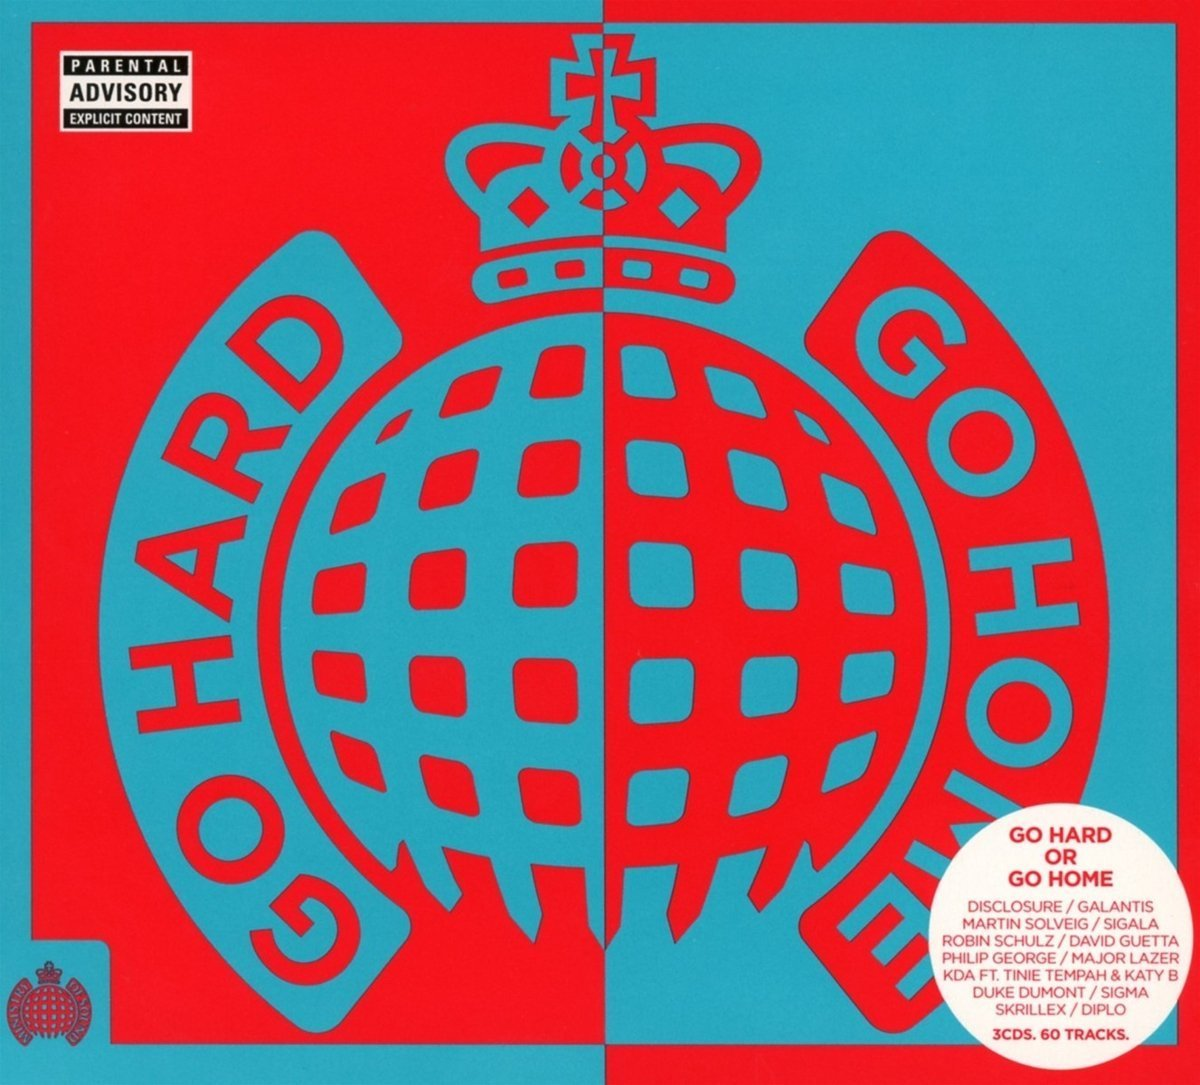 Go Hard Or Go Home - Ministry of Sound (3CD) by Various Artists image